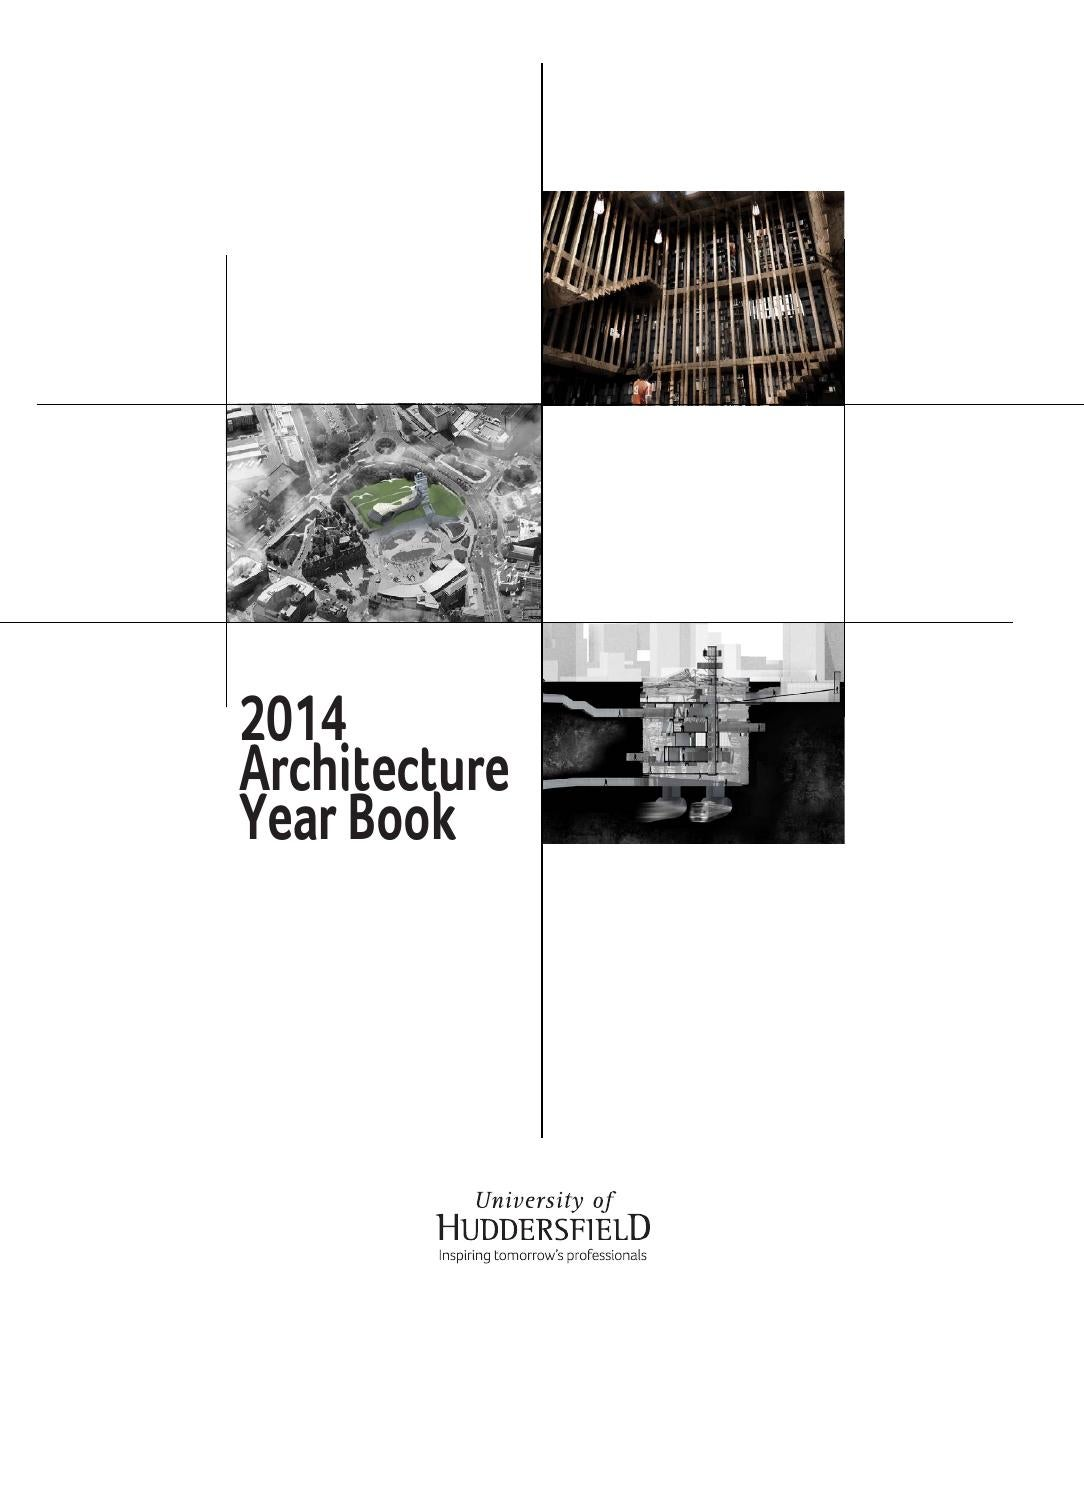 University of Huddersfield Architecture year book 2014 by